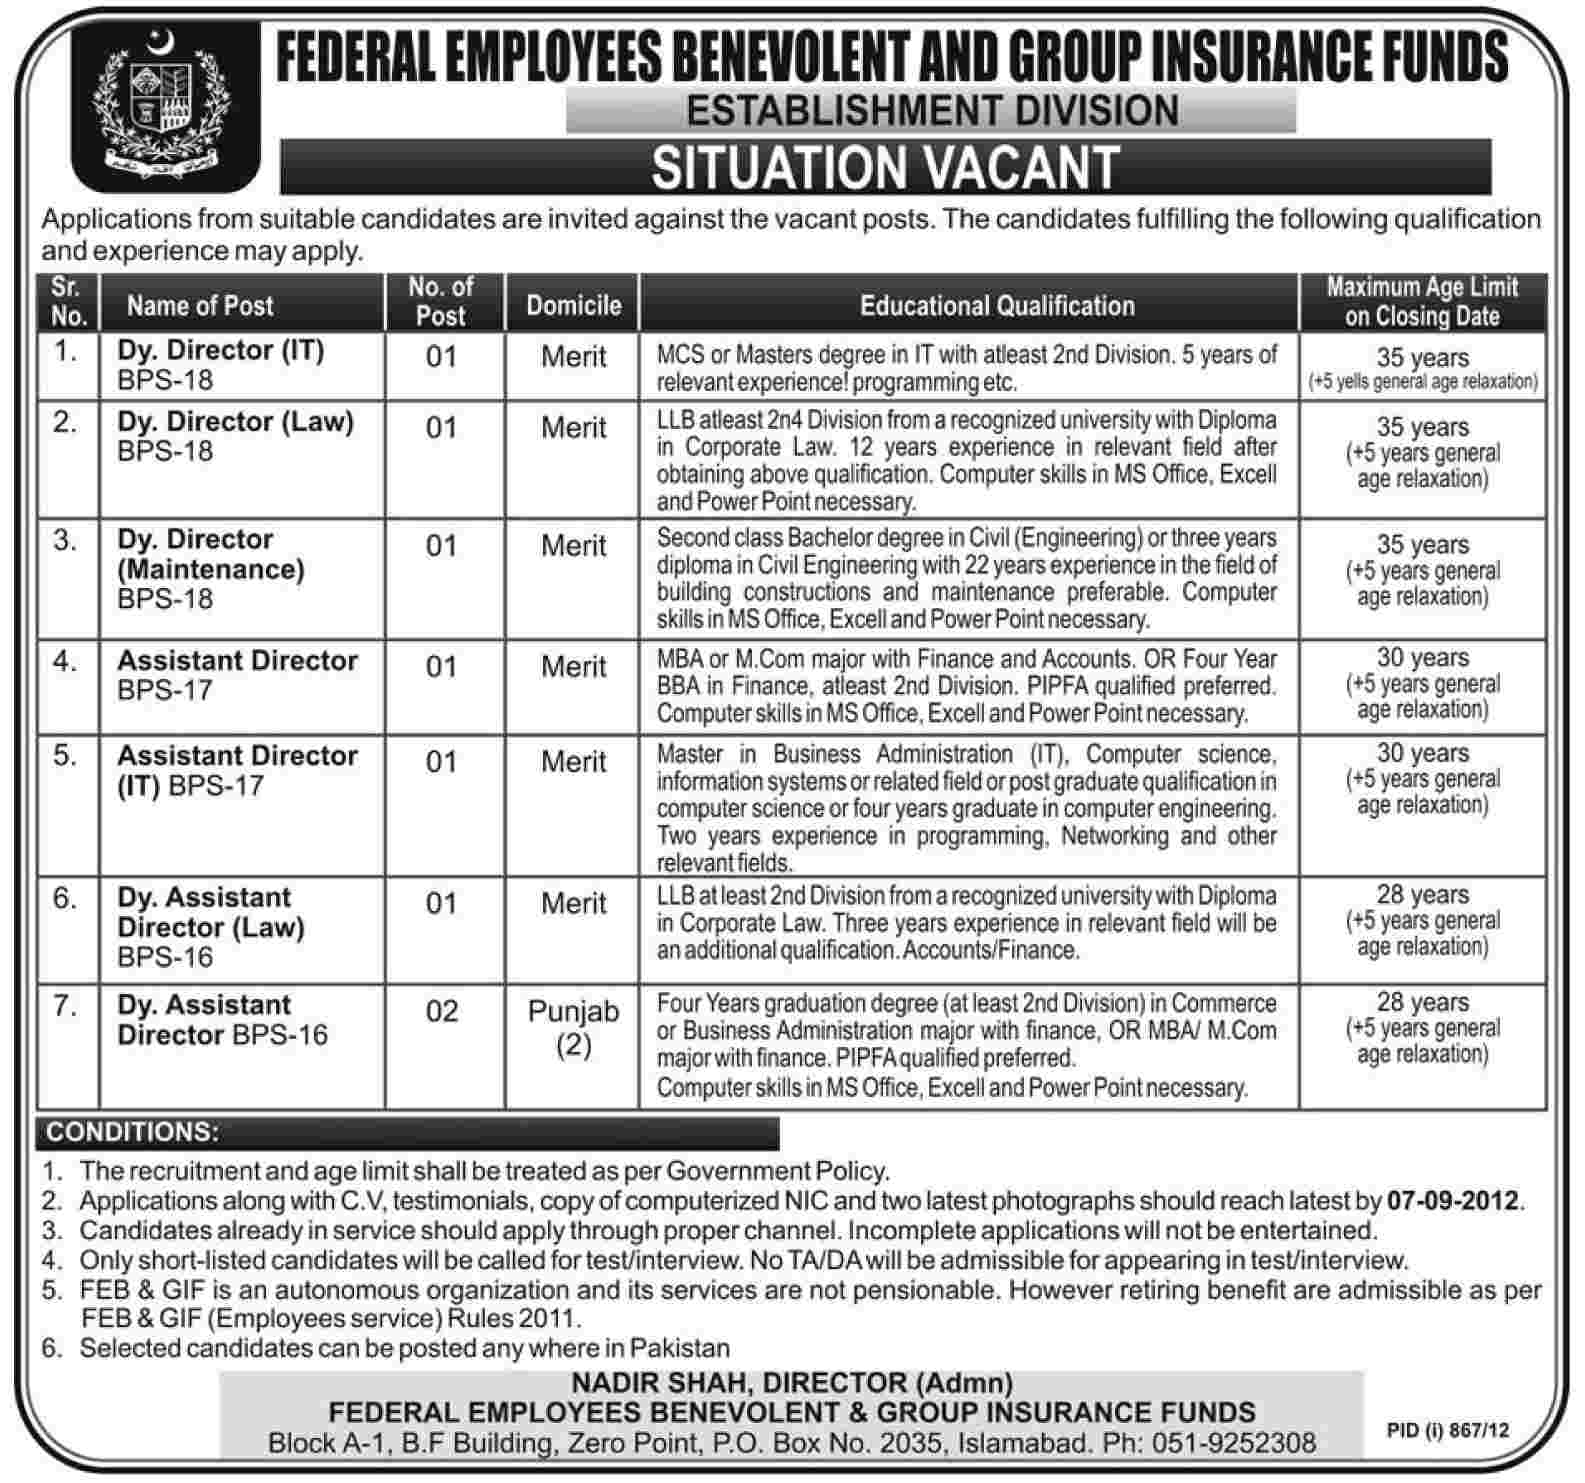 Federal Employees Benevolent and Group Insurance Funds Establishment Division Jobs (Government Job)